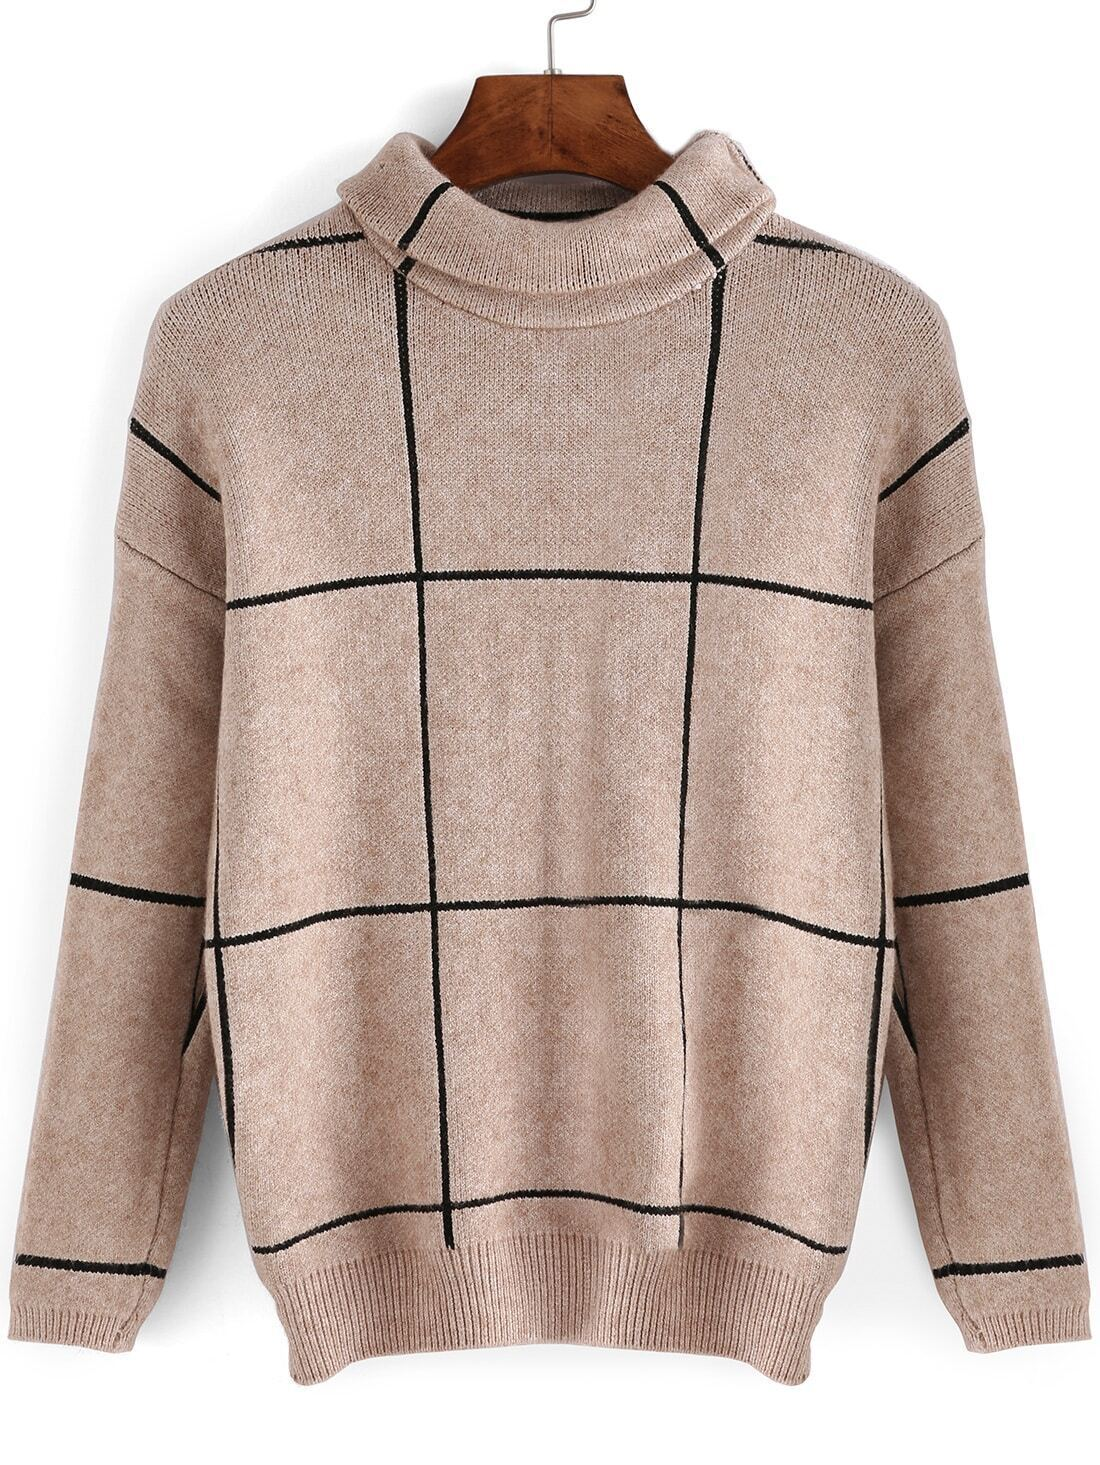 Turtleneck plaid loose sweaterfor women romwe for Plaid shirt under sweater